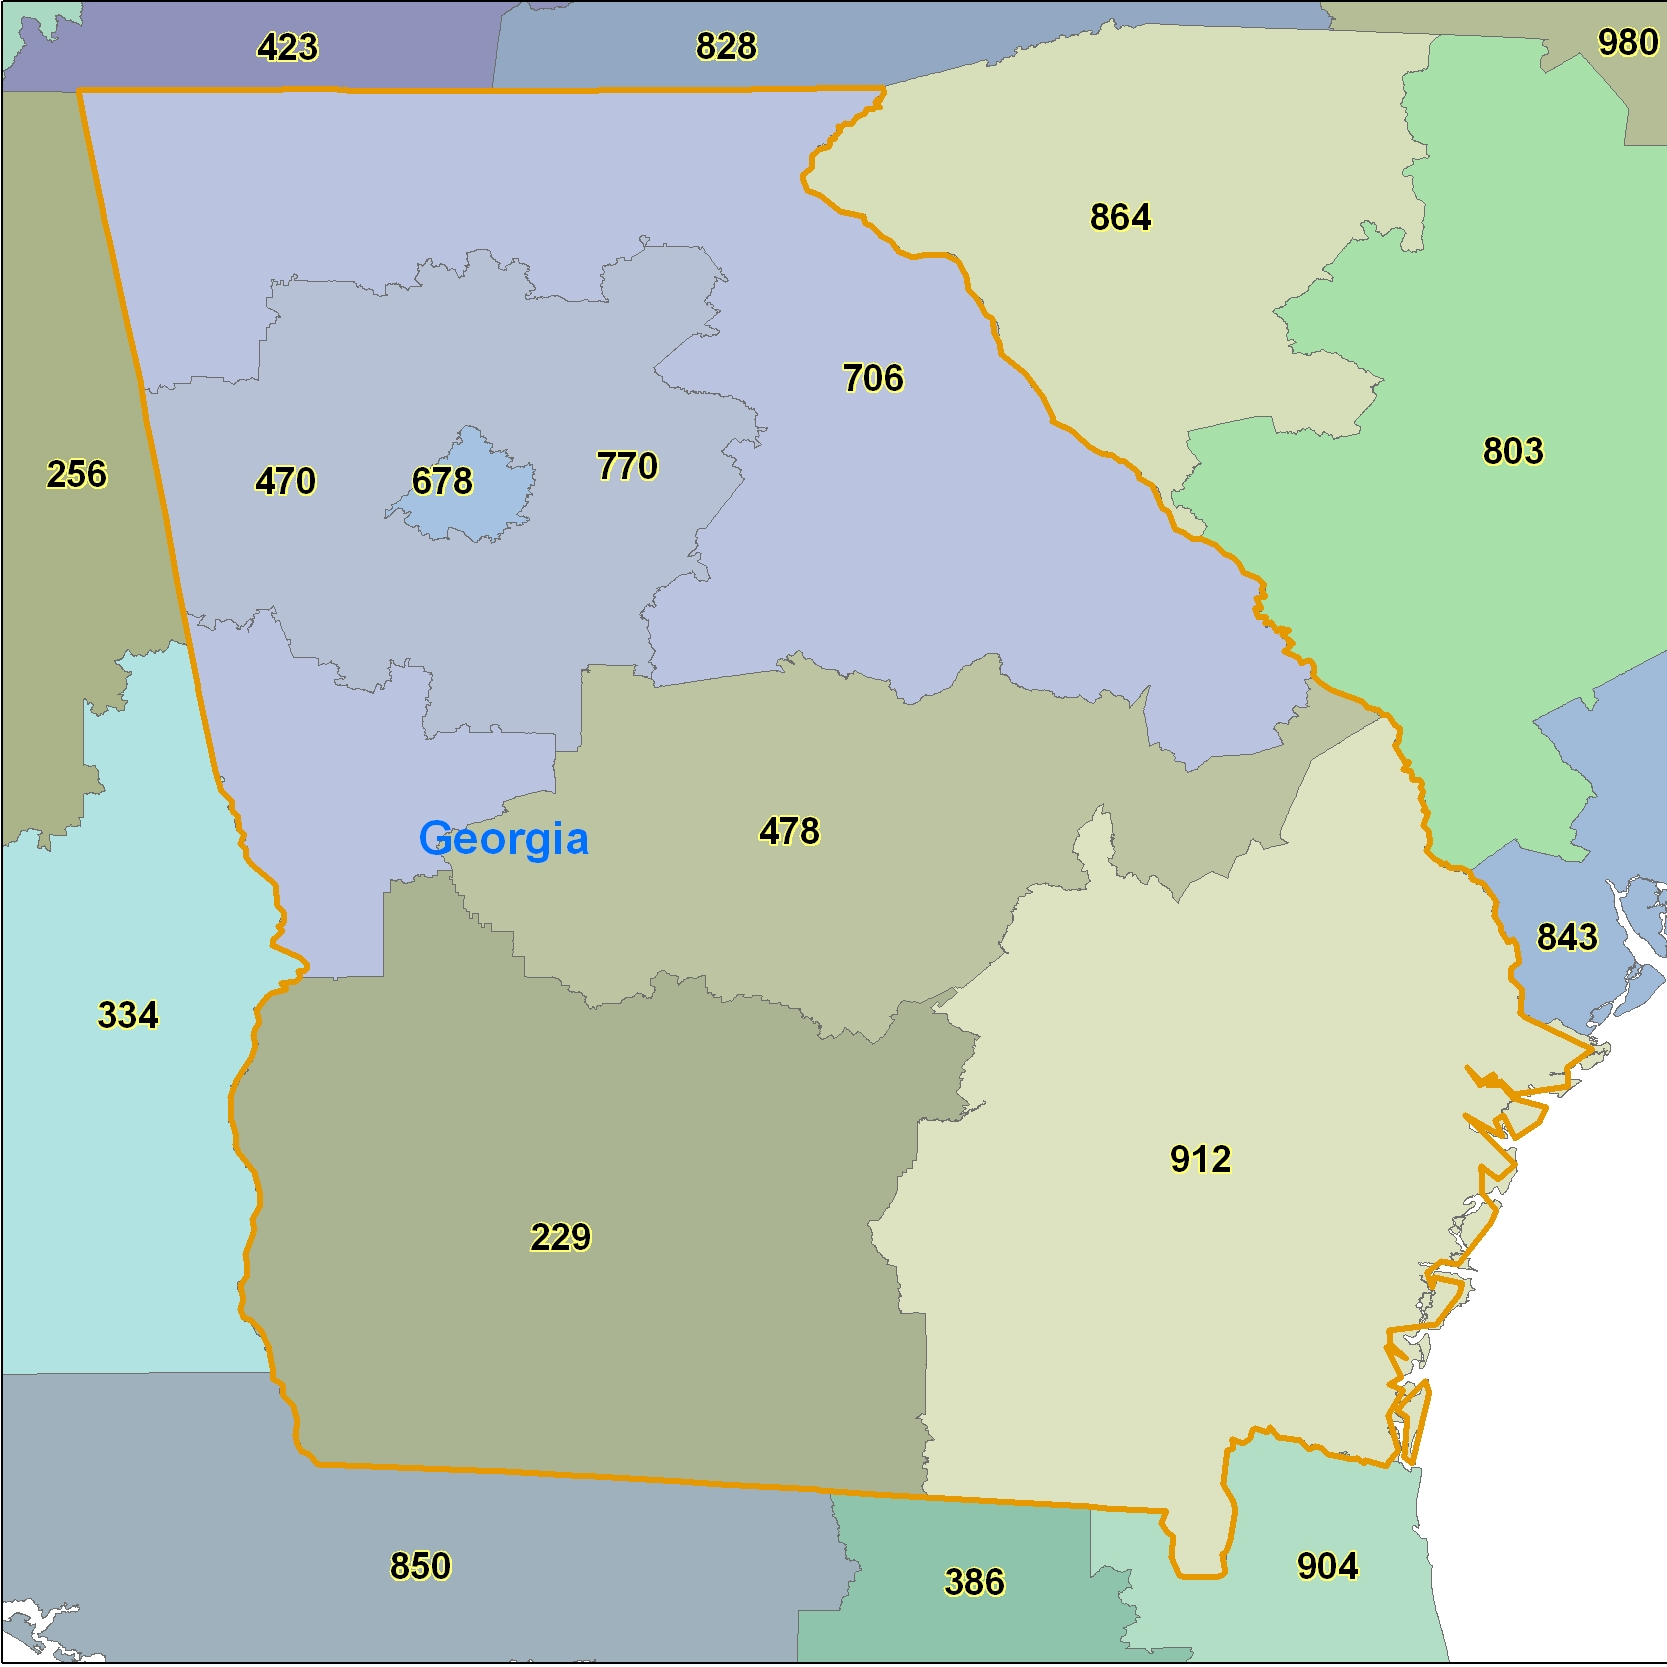 Georgia Area Code Maps Georgia Telephone Area Code Maps Free - Area code wisconsin map